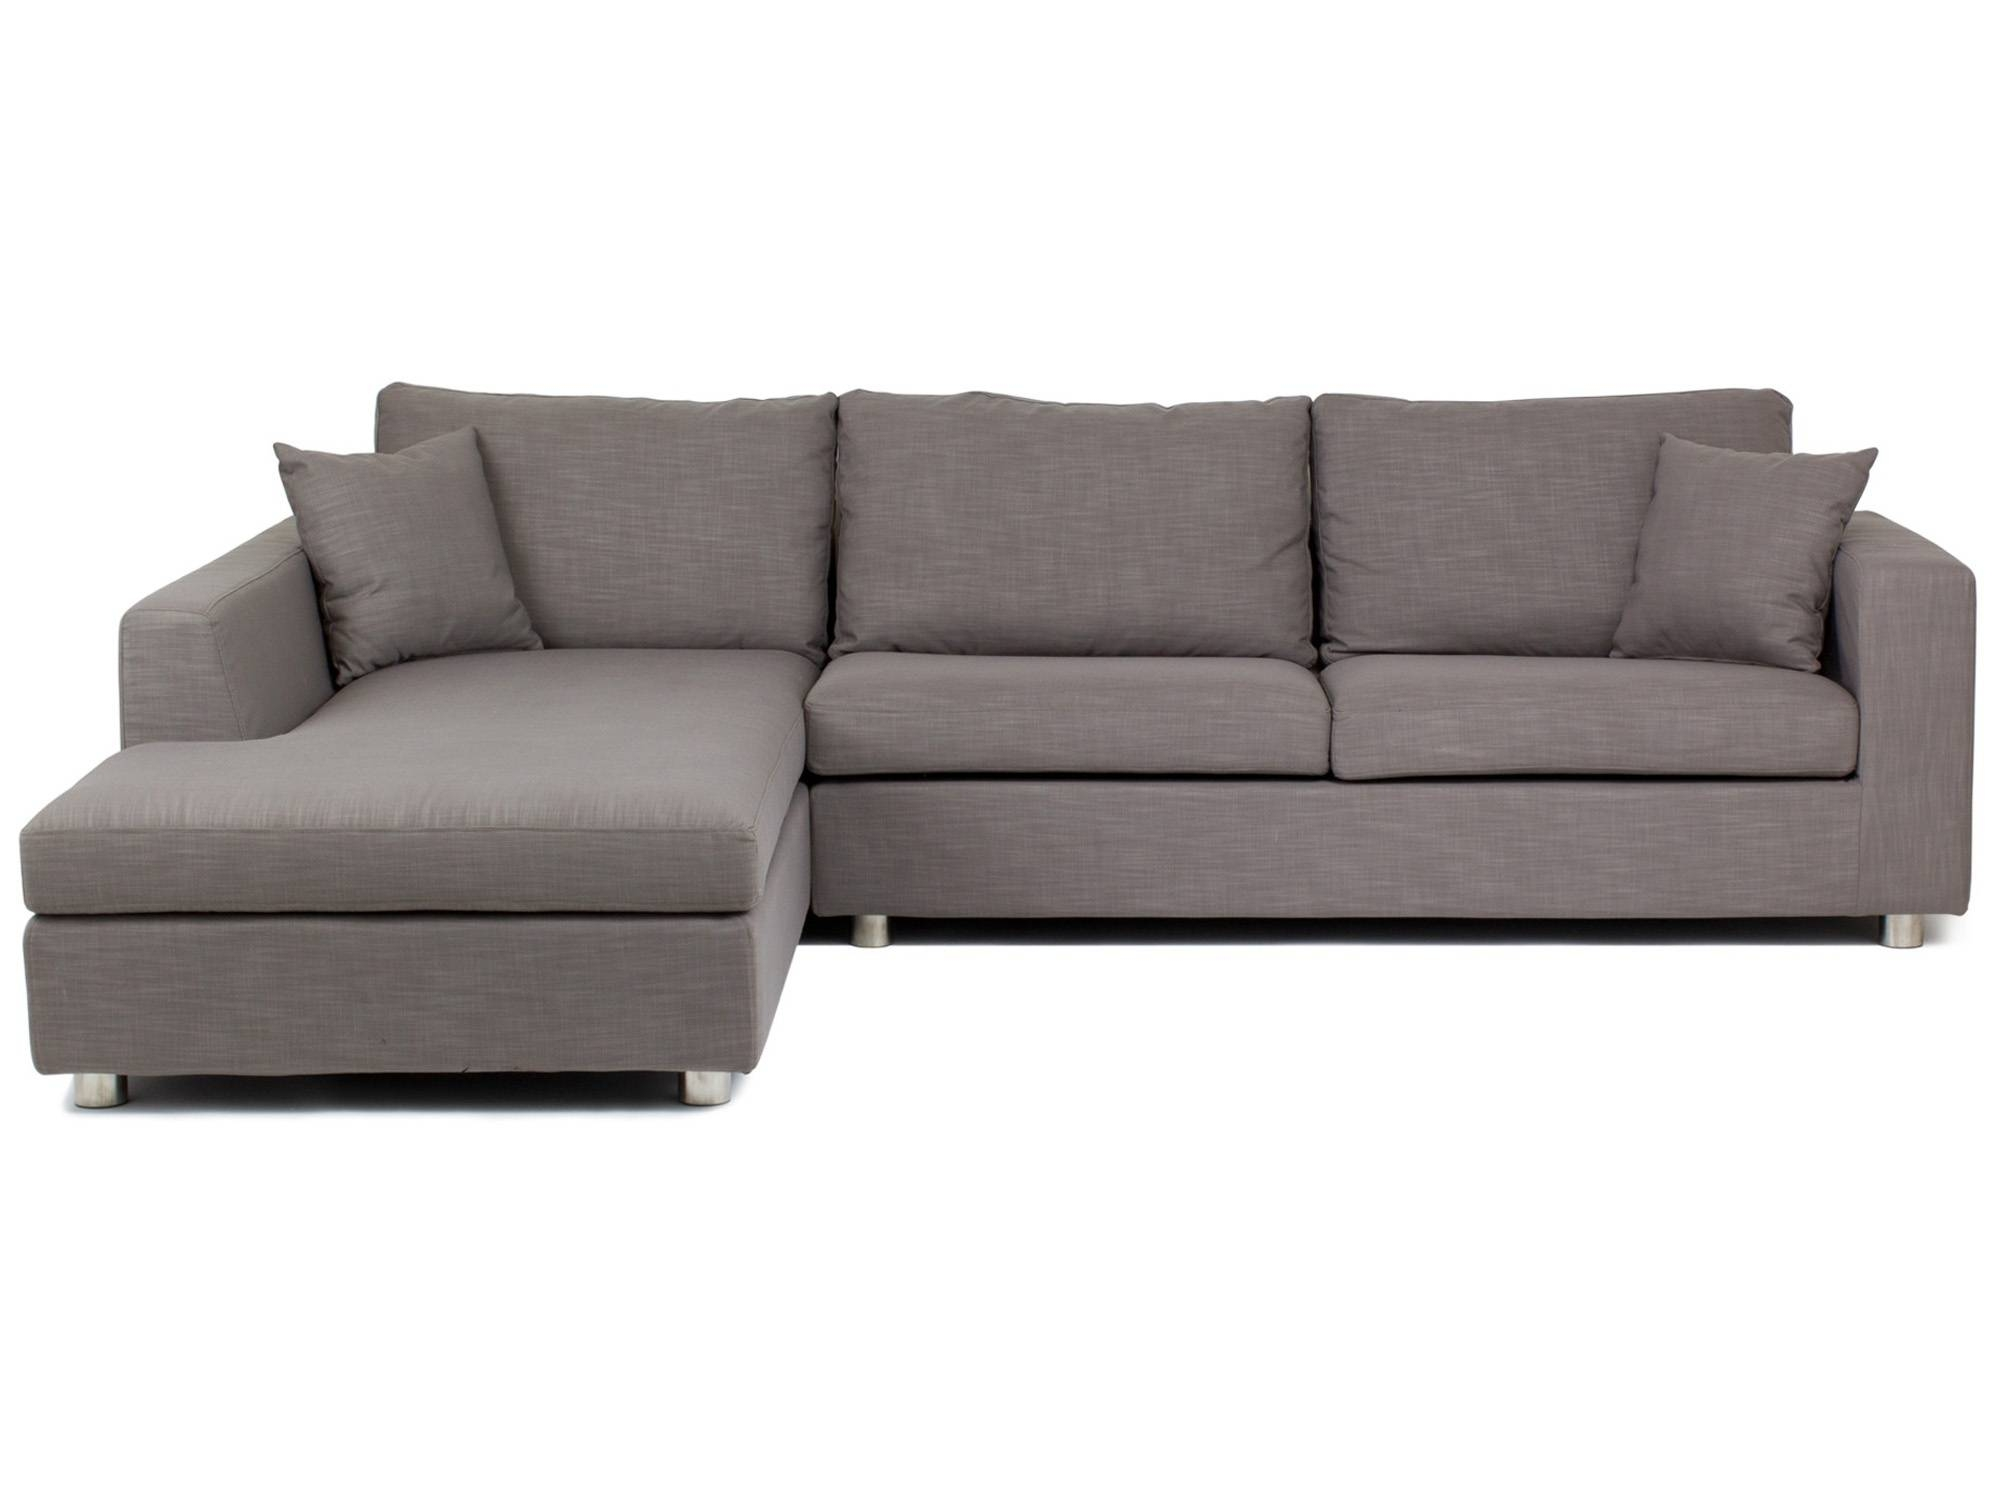 Mondo Storage – Corner Sofa Bed | Loungelovers Within Sofa Beds (View 11 of 15)